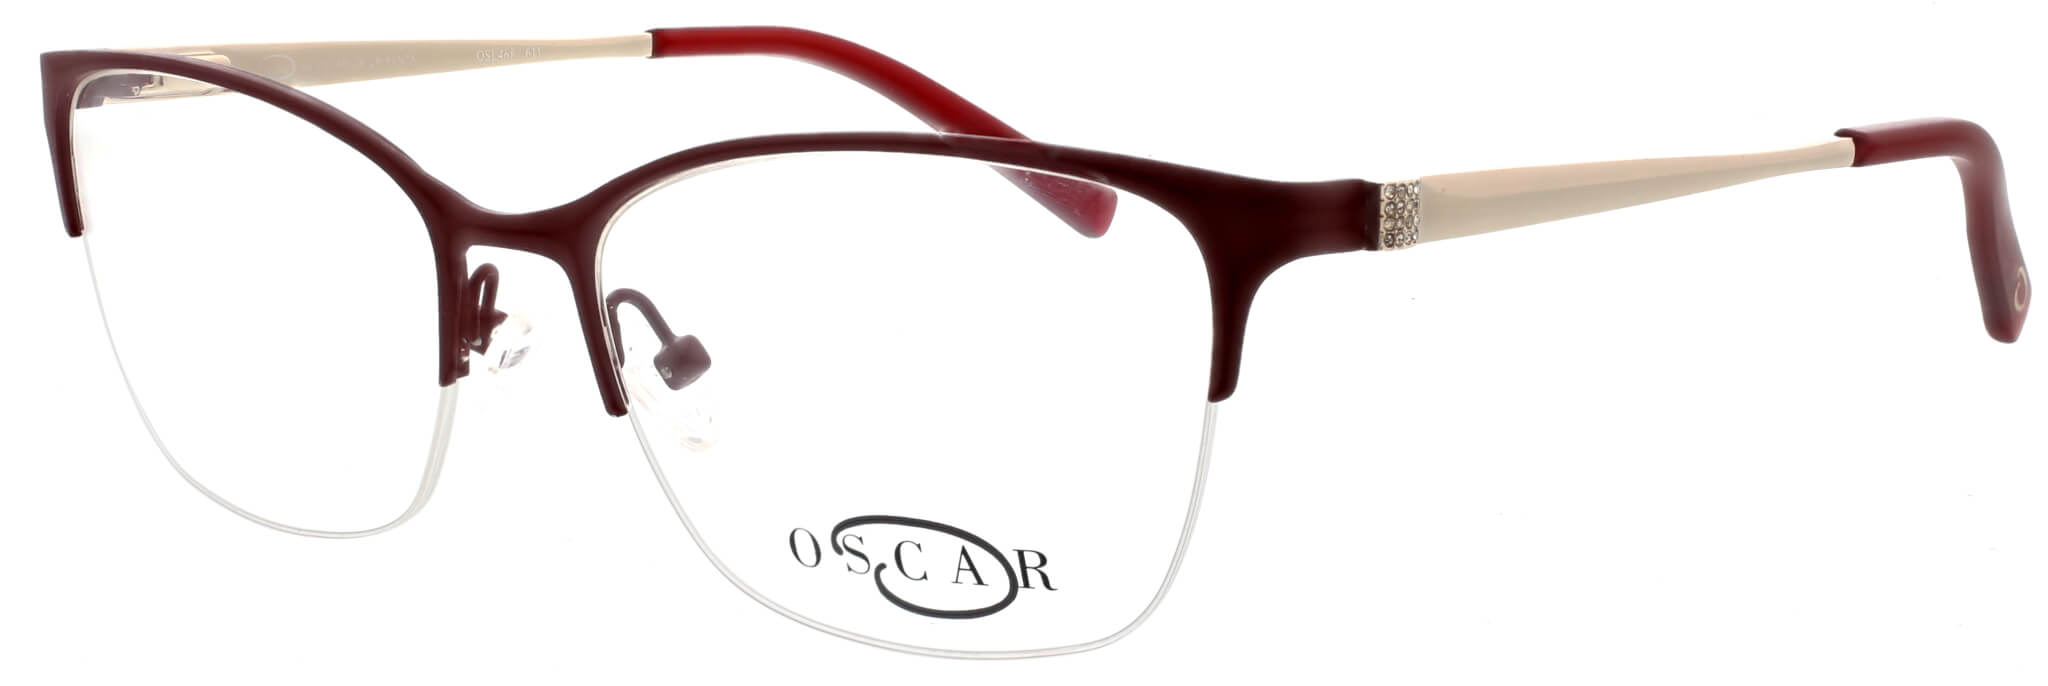 Oscar de la Renta clear frame glasses with red trim